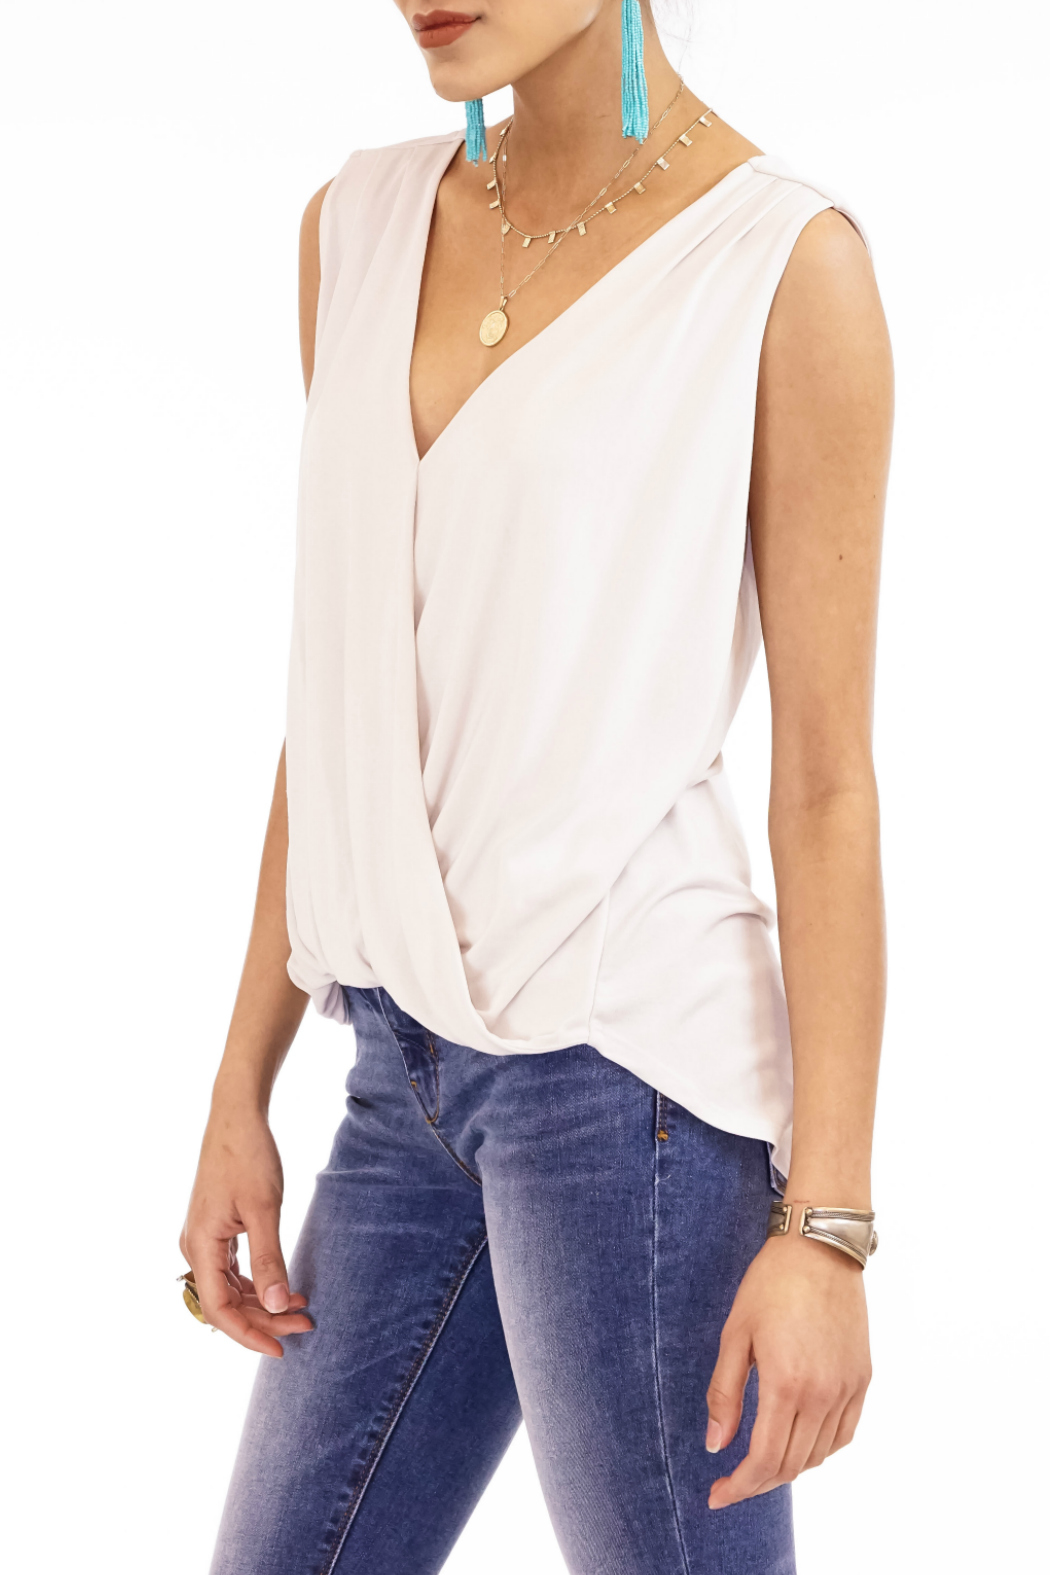 Veronica M Cupro Sleeveless Surplice Top - Front Full Image